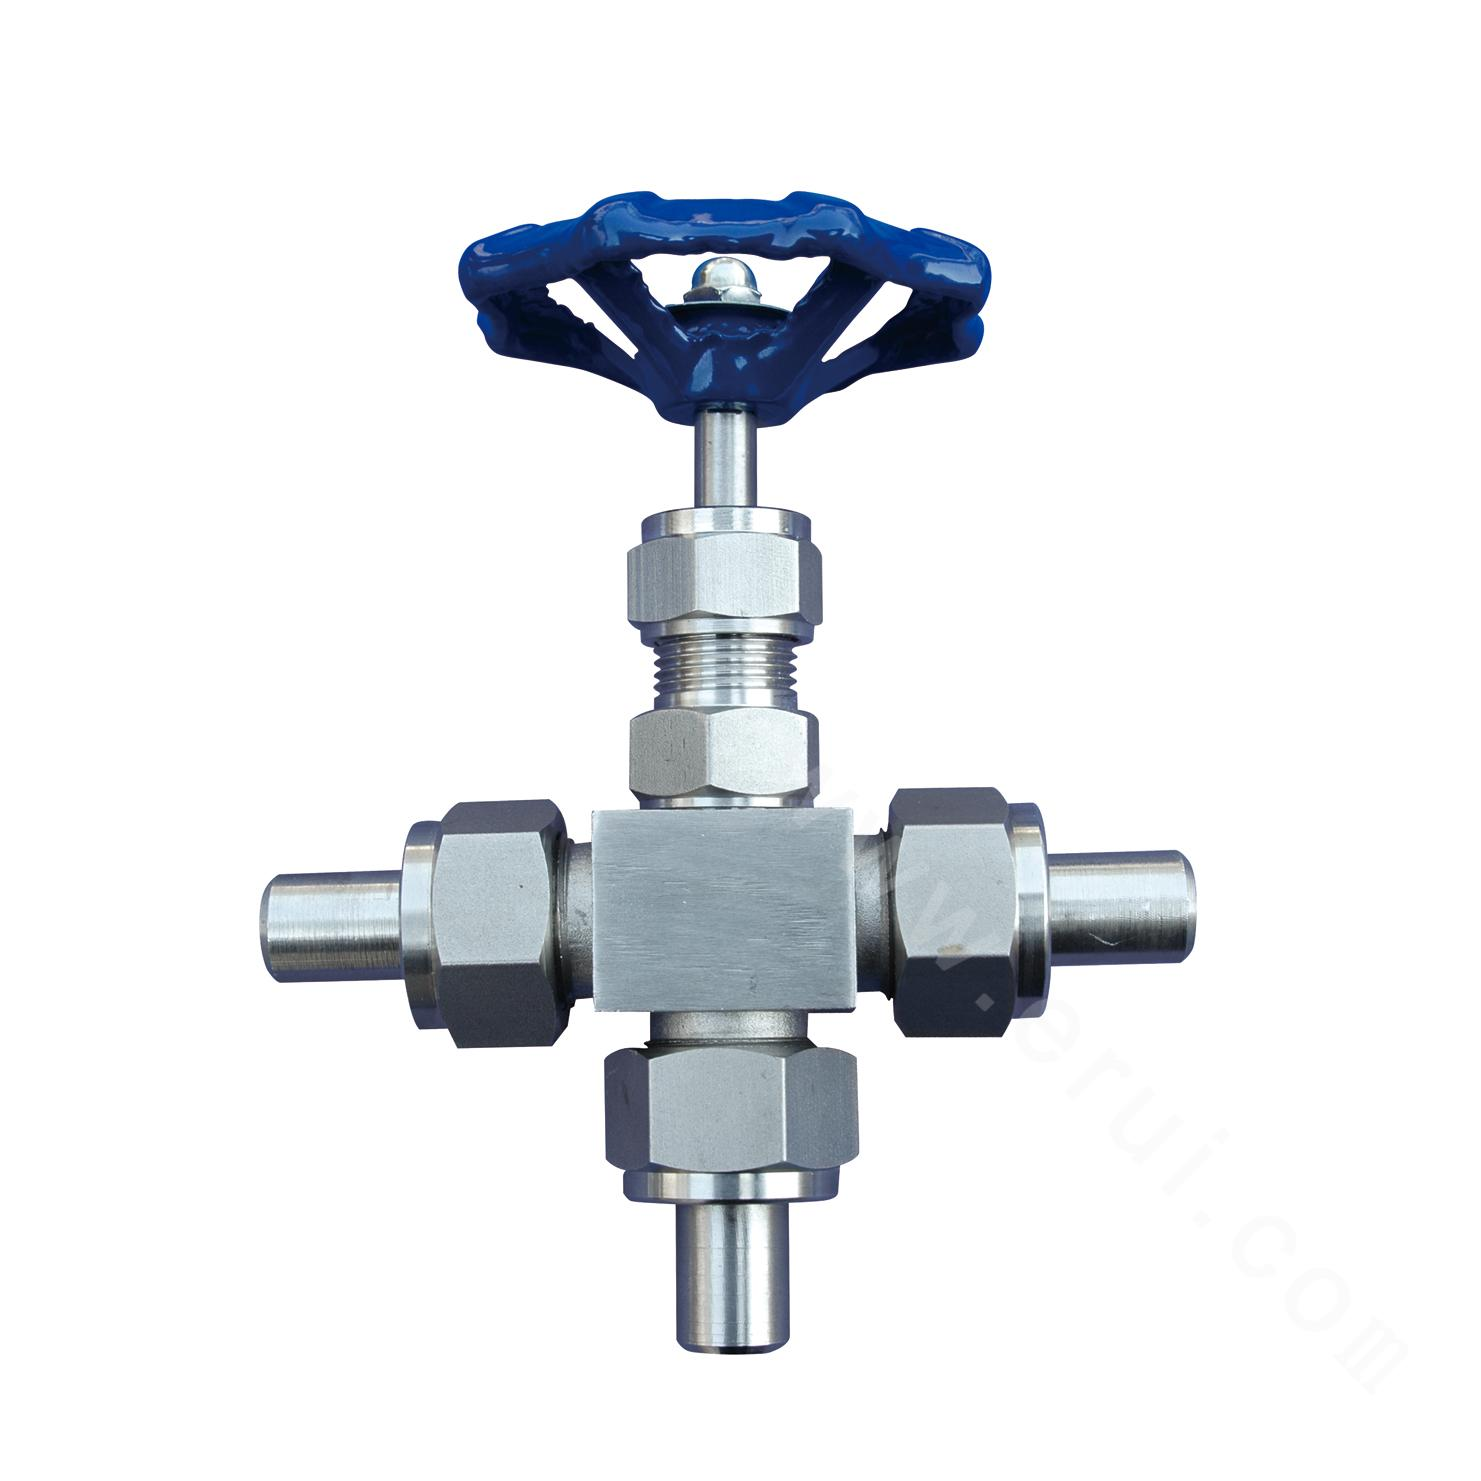 CZY12-6-J26H External thread three-way stop valve